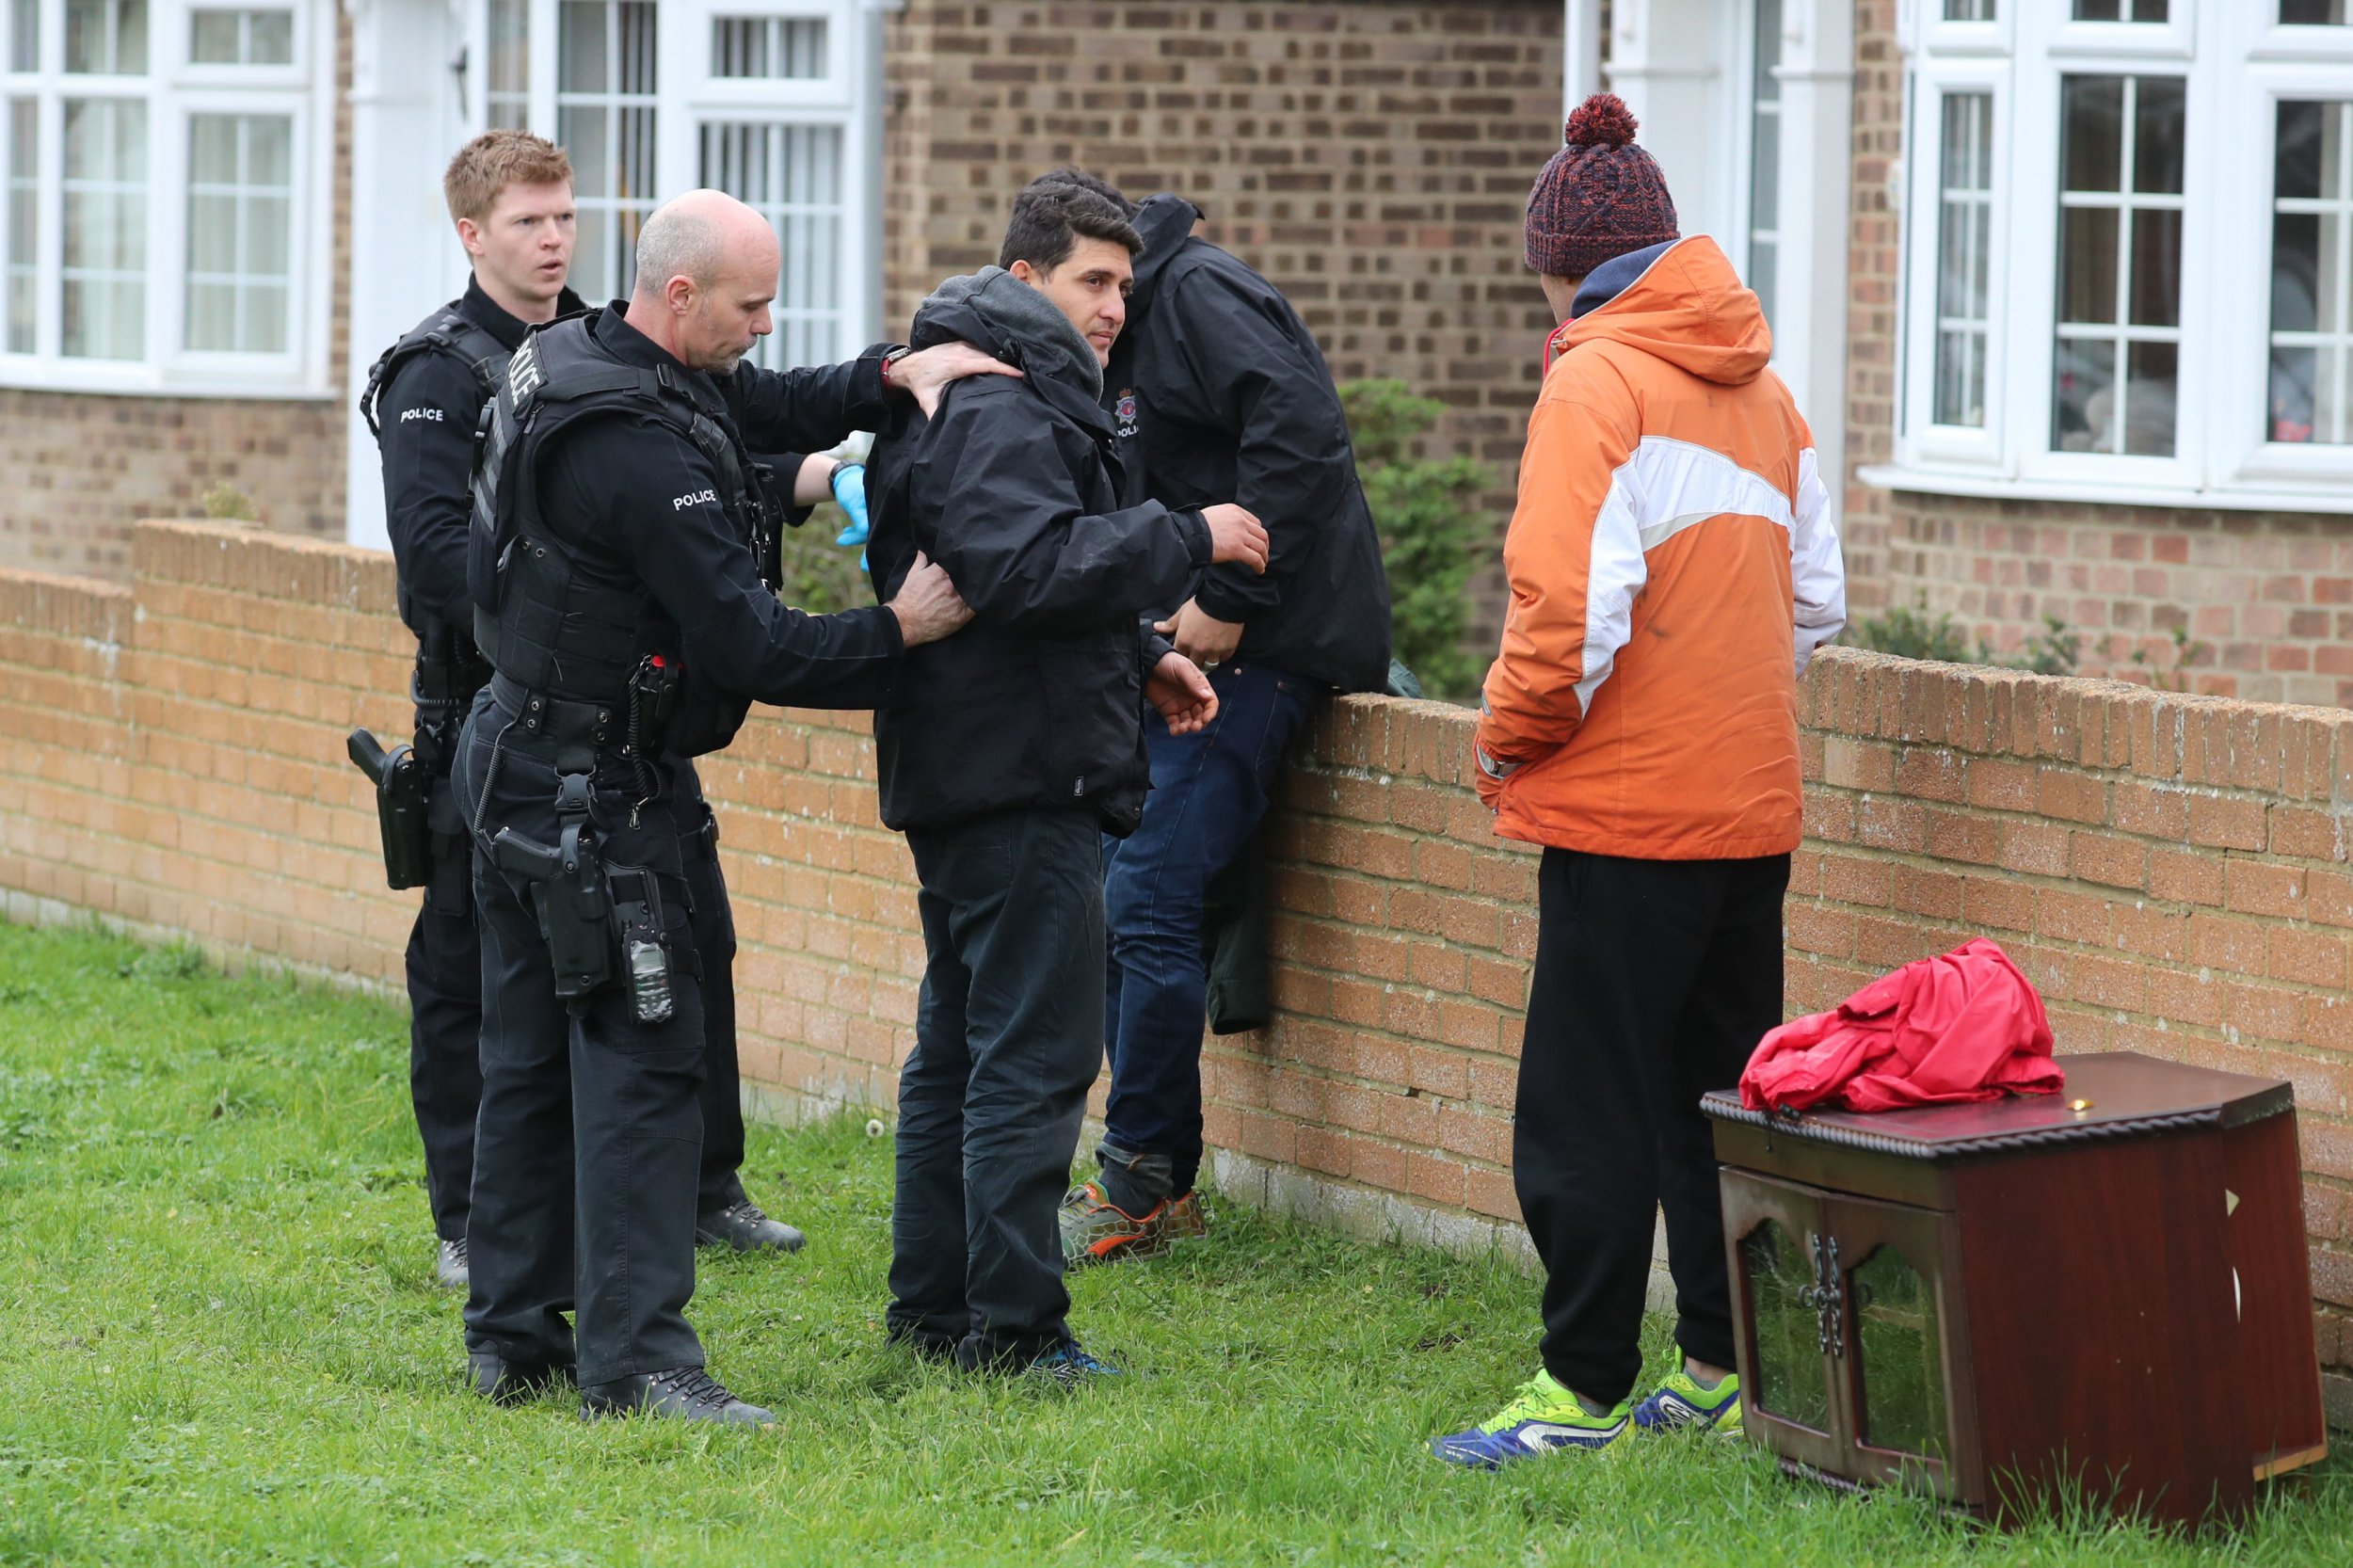 Police take care of migrants found following a search which was launched when an empty inflatable boat was found on Dungeness beach in Kent at about 8.10am this morning. PRESS ASSOCIATION Photo. Picture date: Monday January 7, 2019. See PA story POLITICS Migrants. Photo credit should read: Gareth Fuller/PA Wire